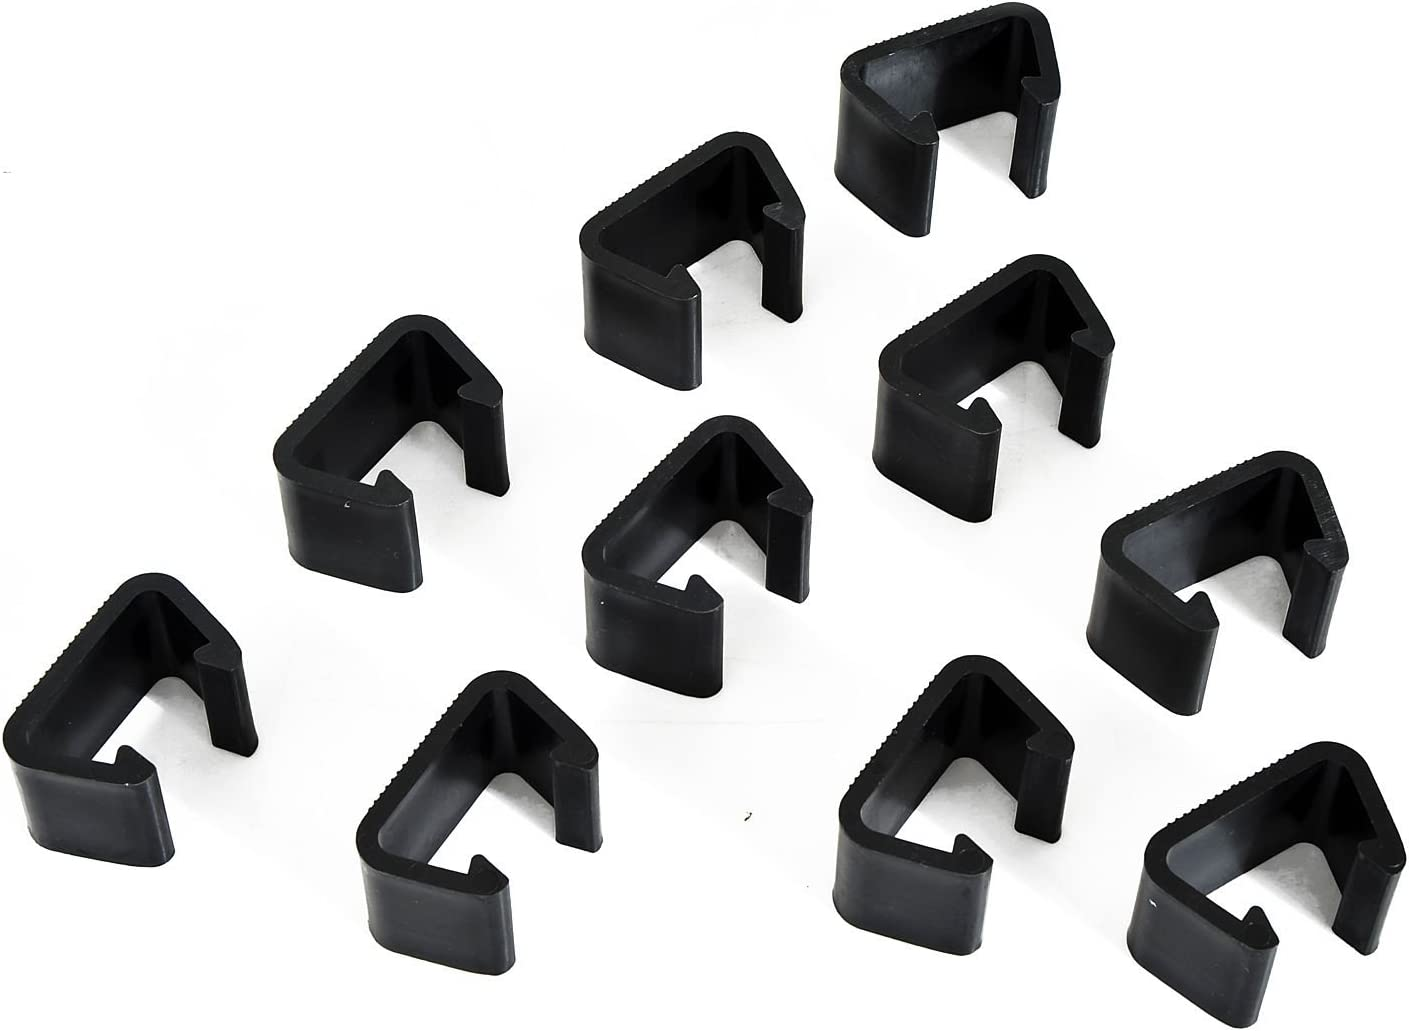 Outsunny Outdoor Sectional Sofa Furniture Connector Fastener Clips - Set of 10